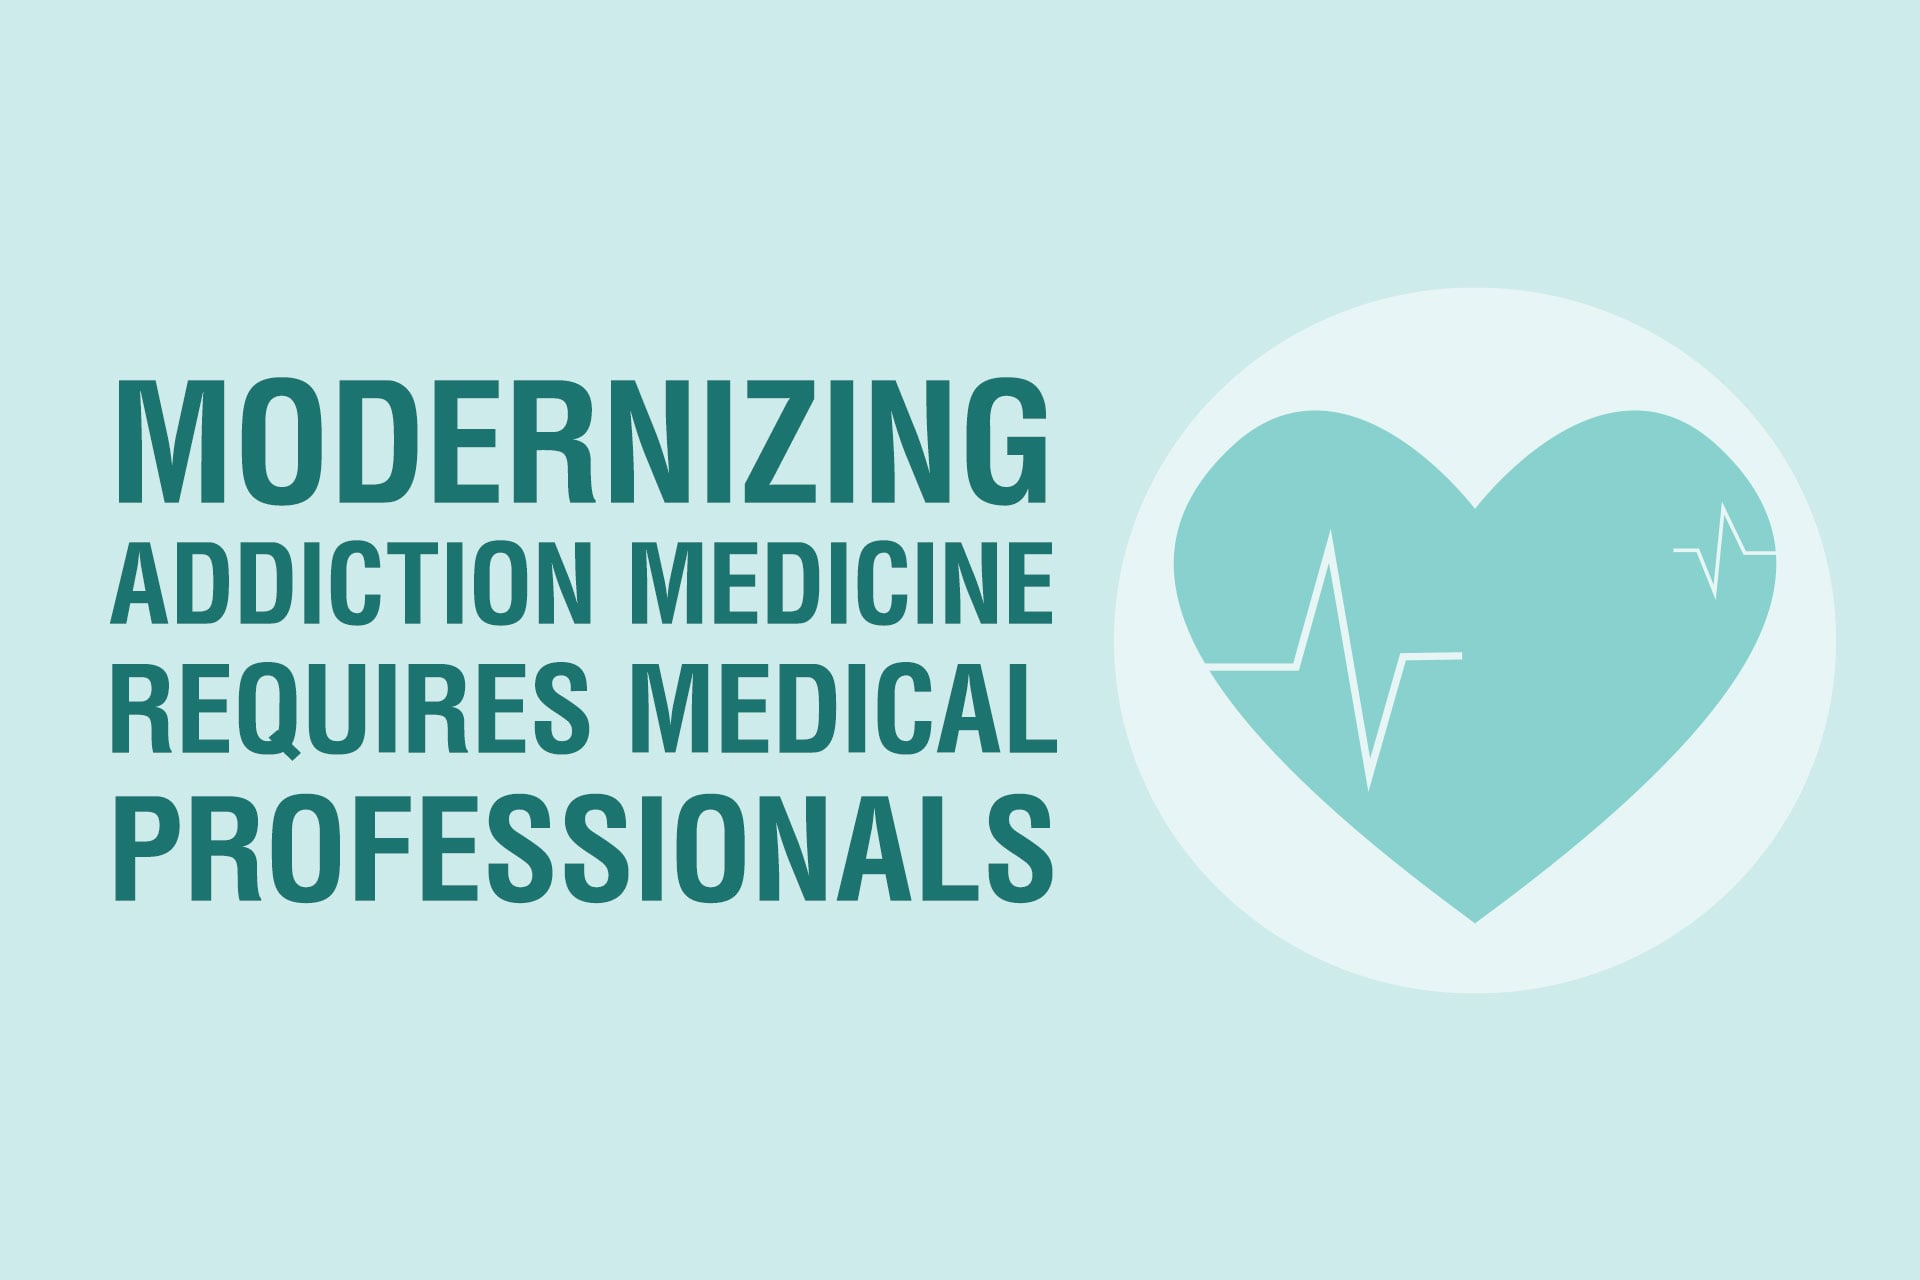 Modernizing Addiction Medicine Requires Medical Professionals